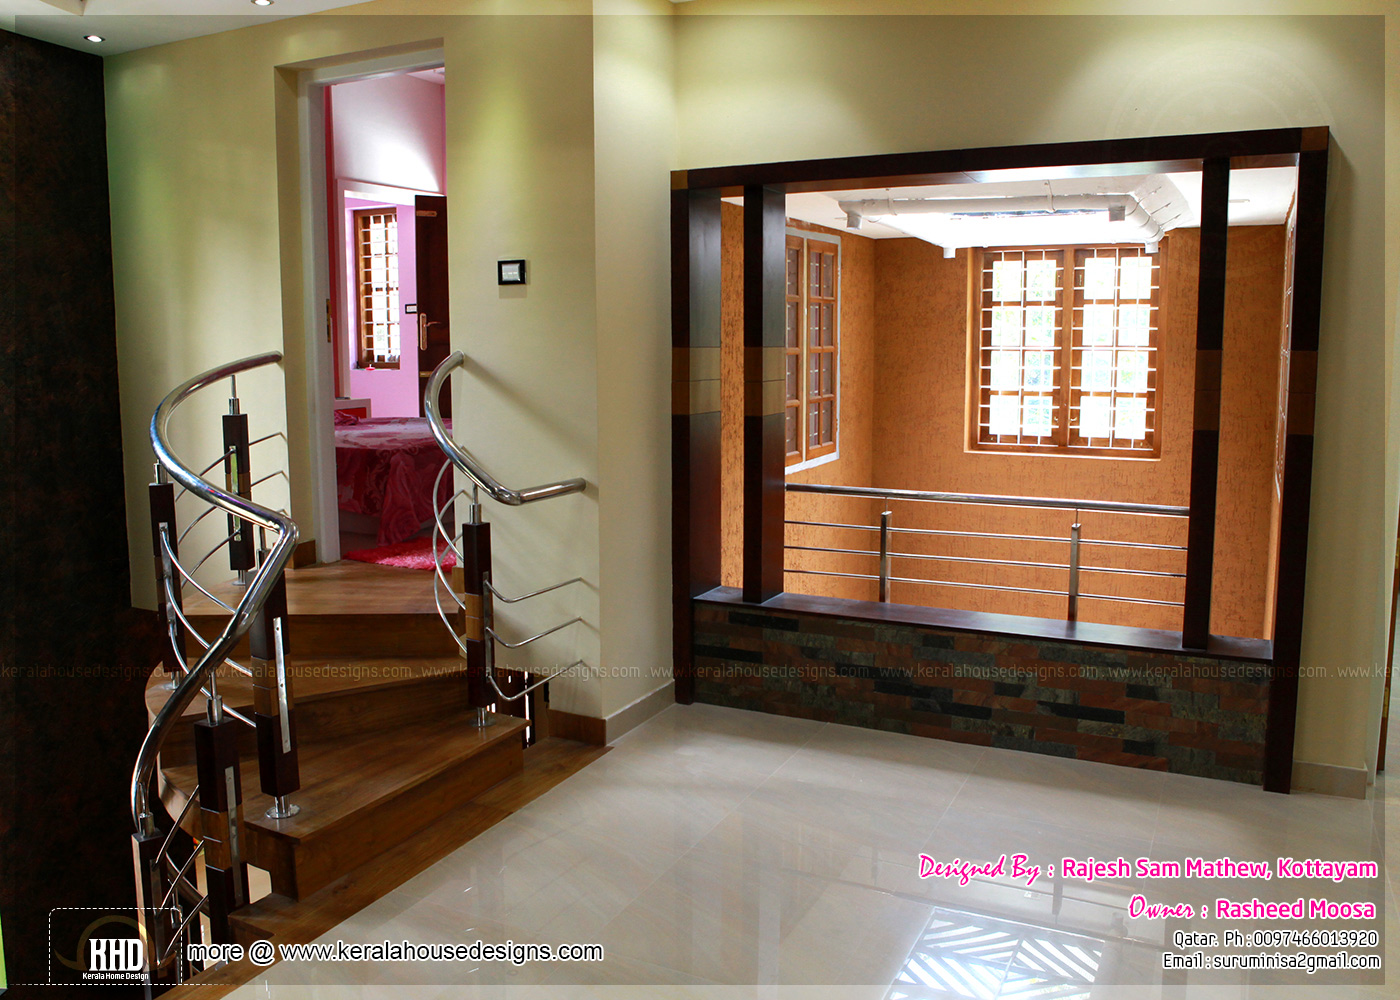 Kerala interior design with photos kerala home design Home plans with interior pictures